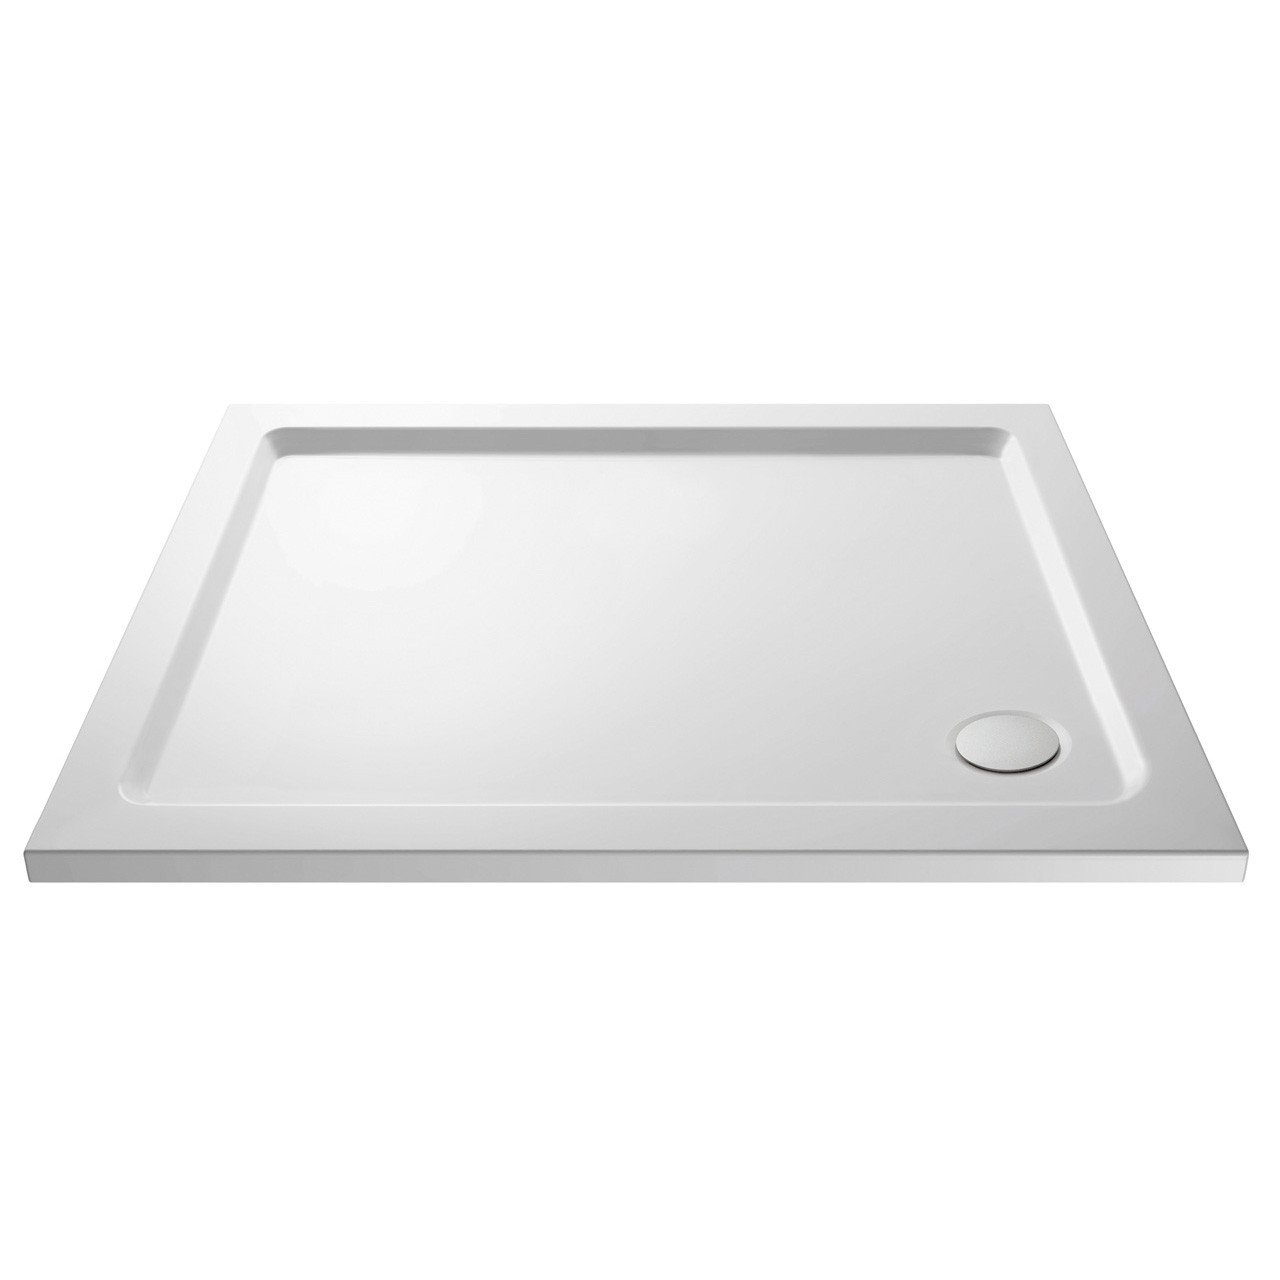 Premiere Pearlstone 1200mm x 760mm x 40mm Rectangular Shower Tray with Corner Waste - NTP022